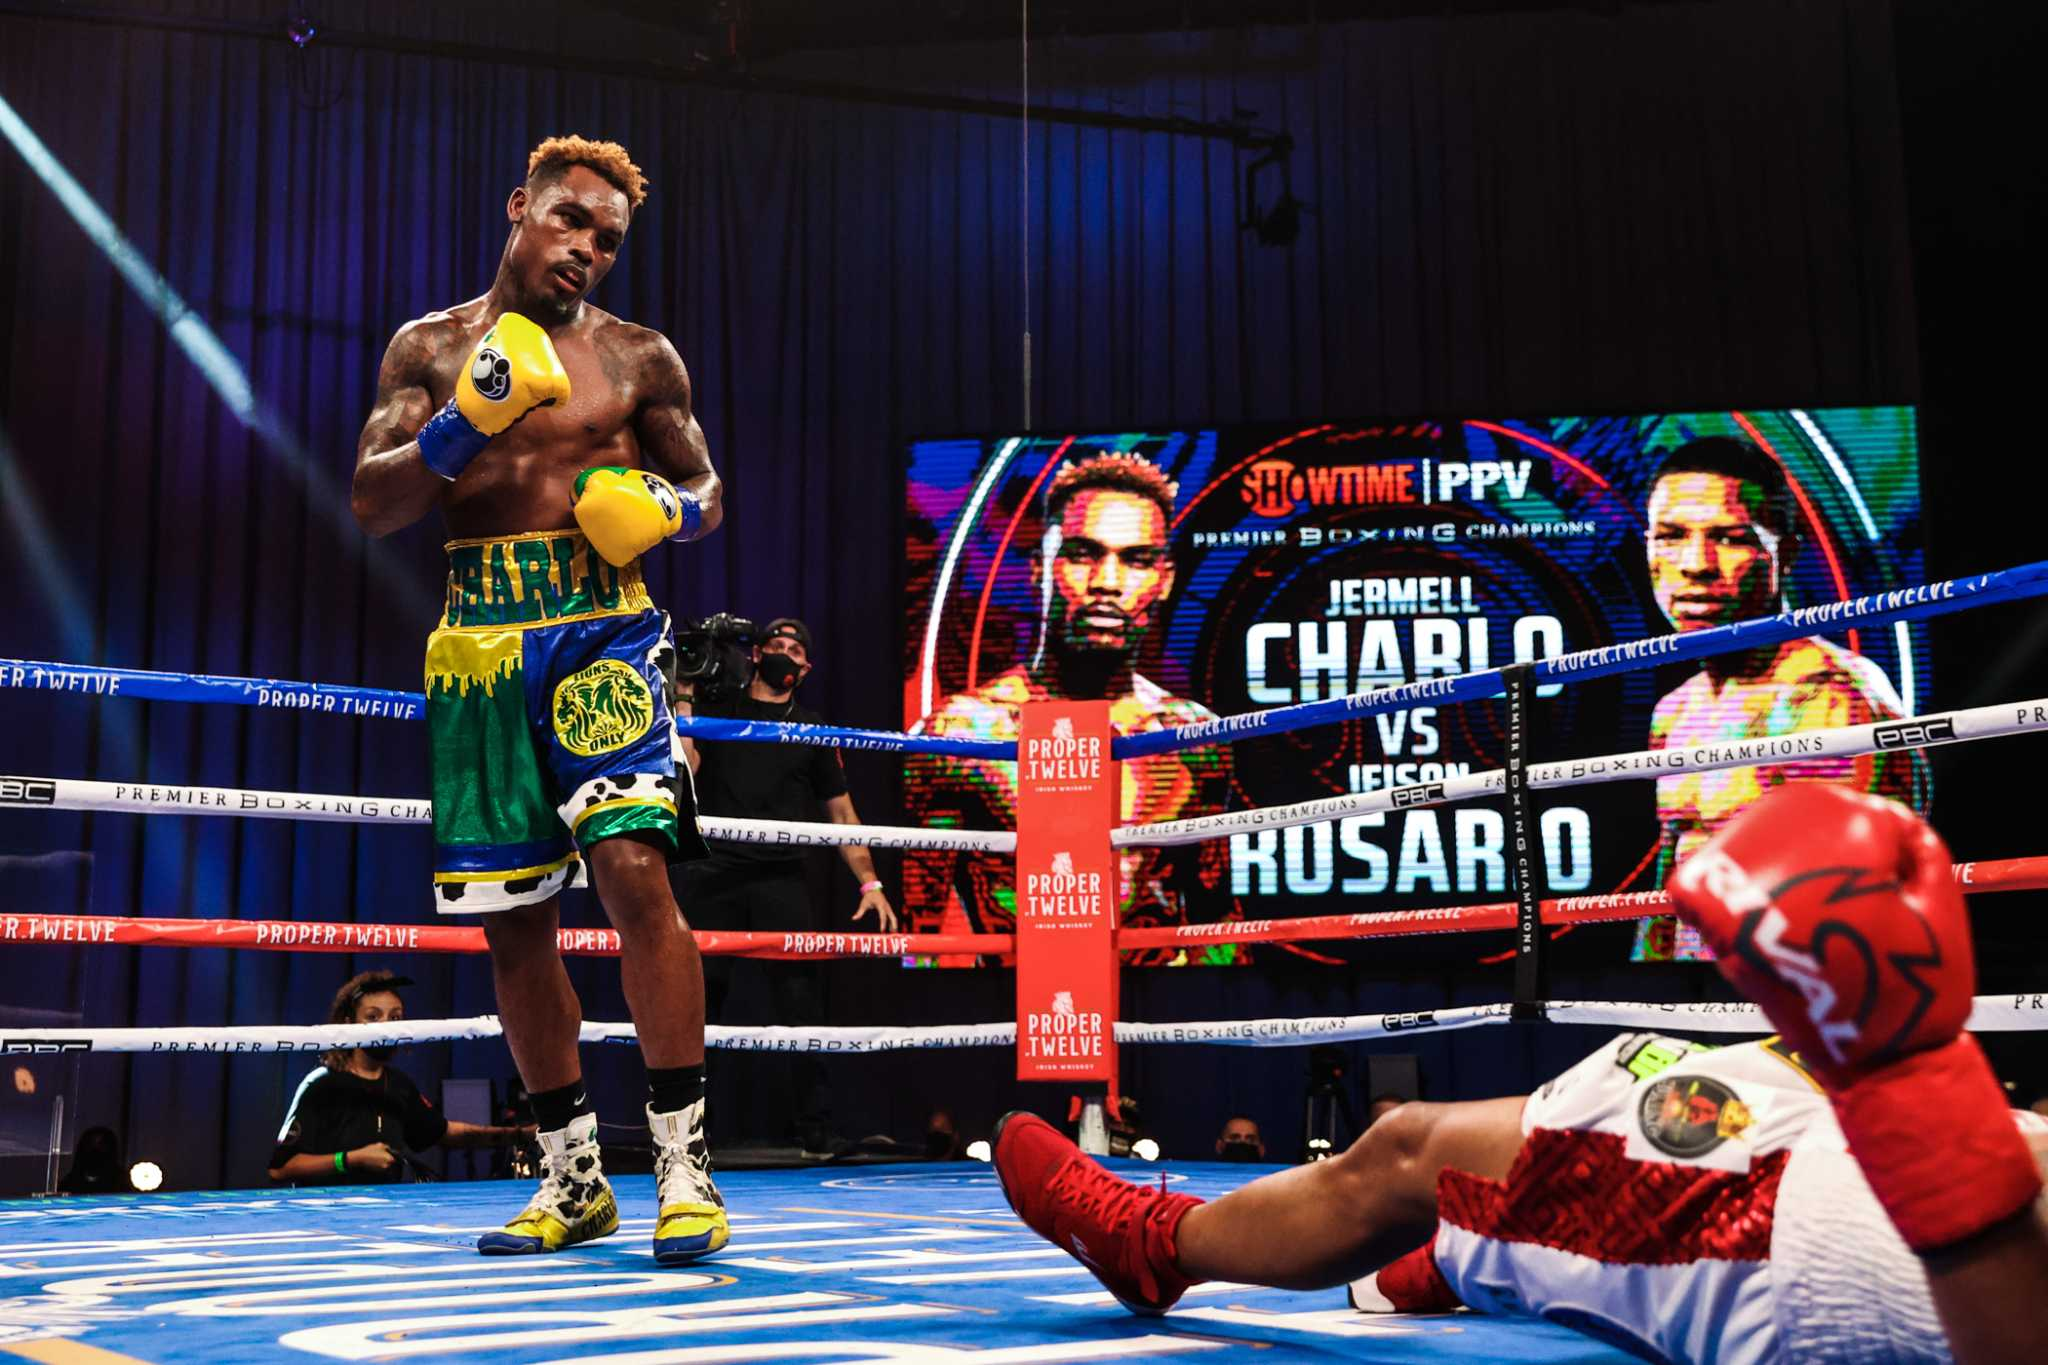 Jermell Charlo knocks out Jeison Rosario with jab to the gut